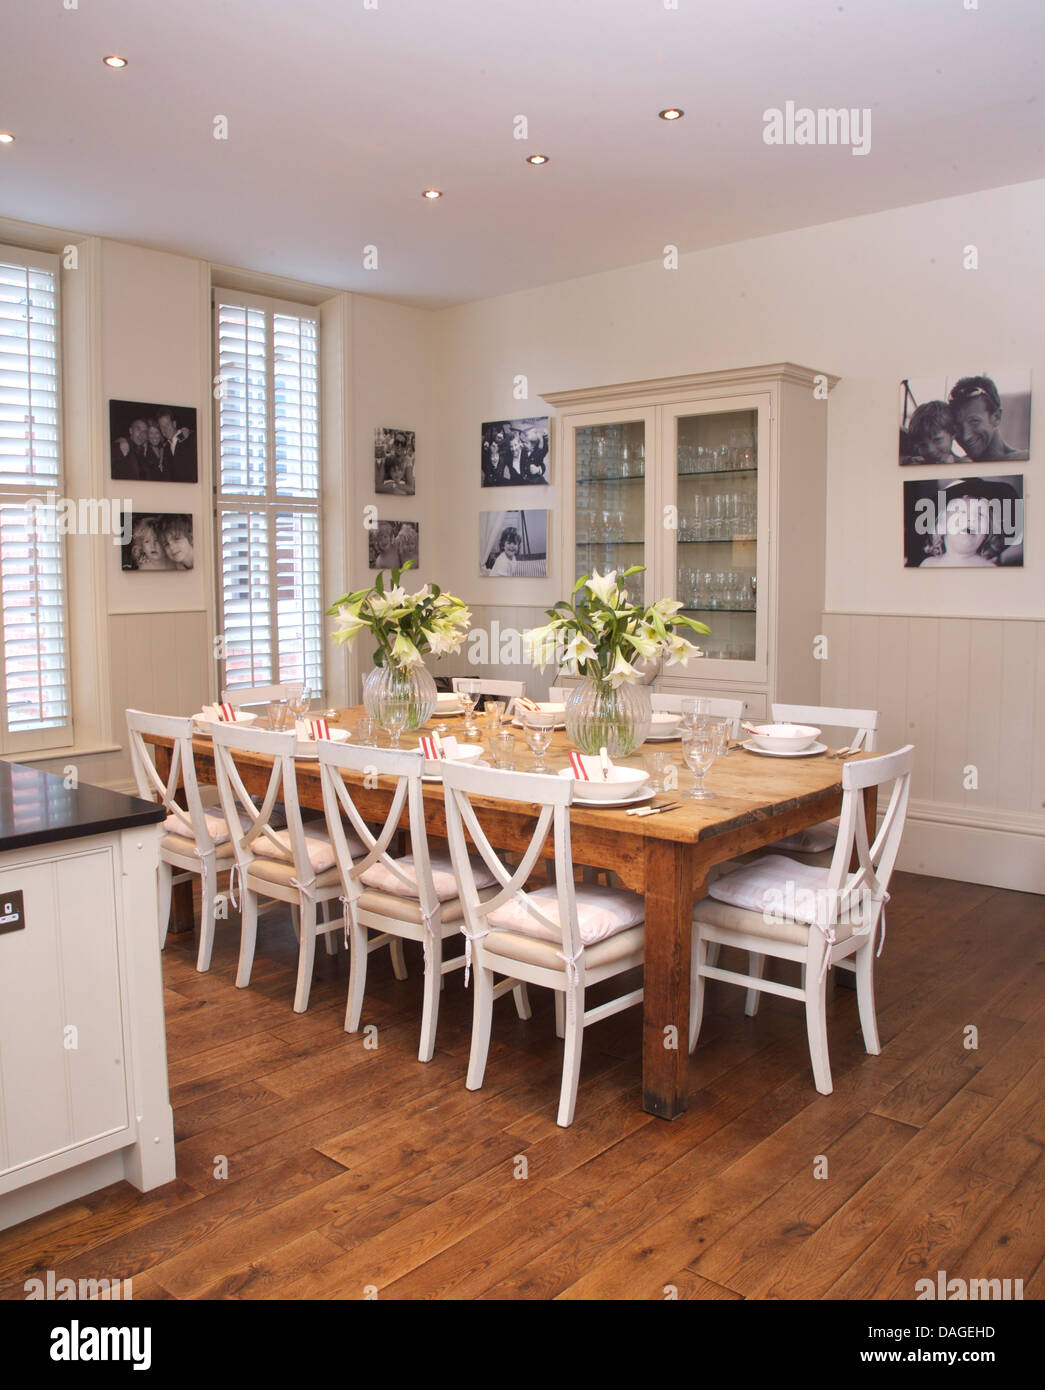 White Chairs At Simple Wood Table In Modern White Kitchen Dining Room Stock Photo Alamy